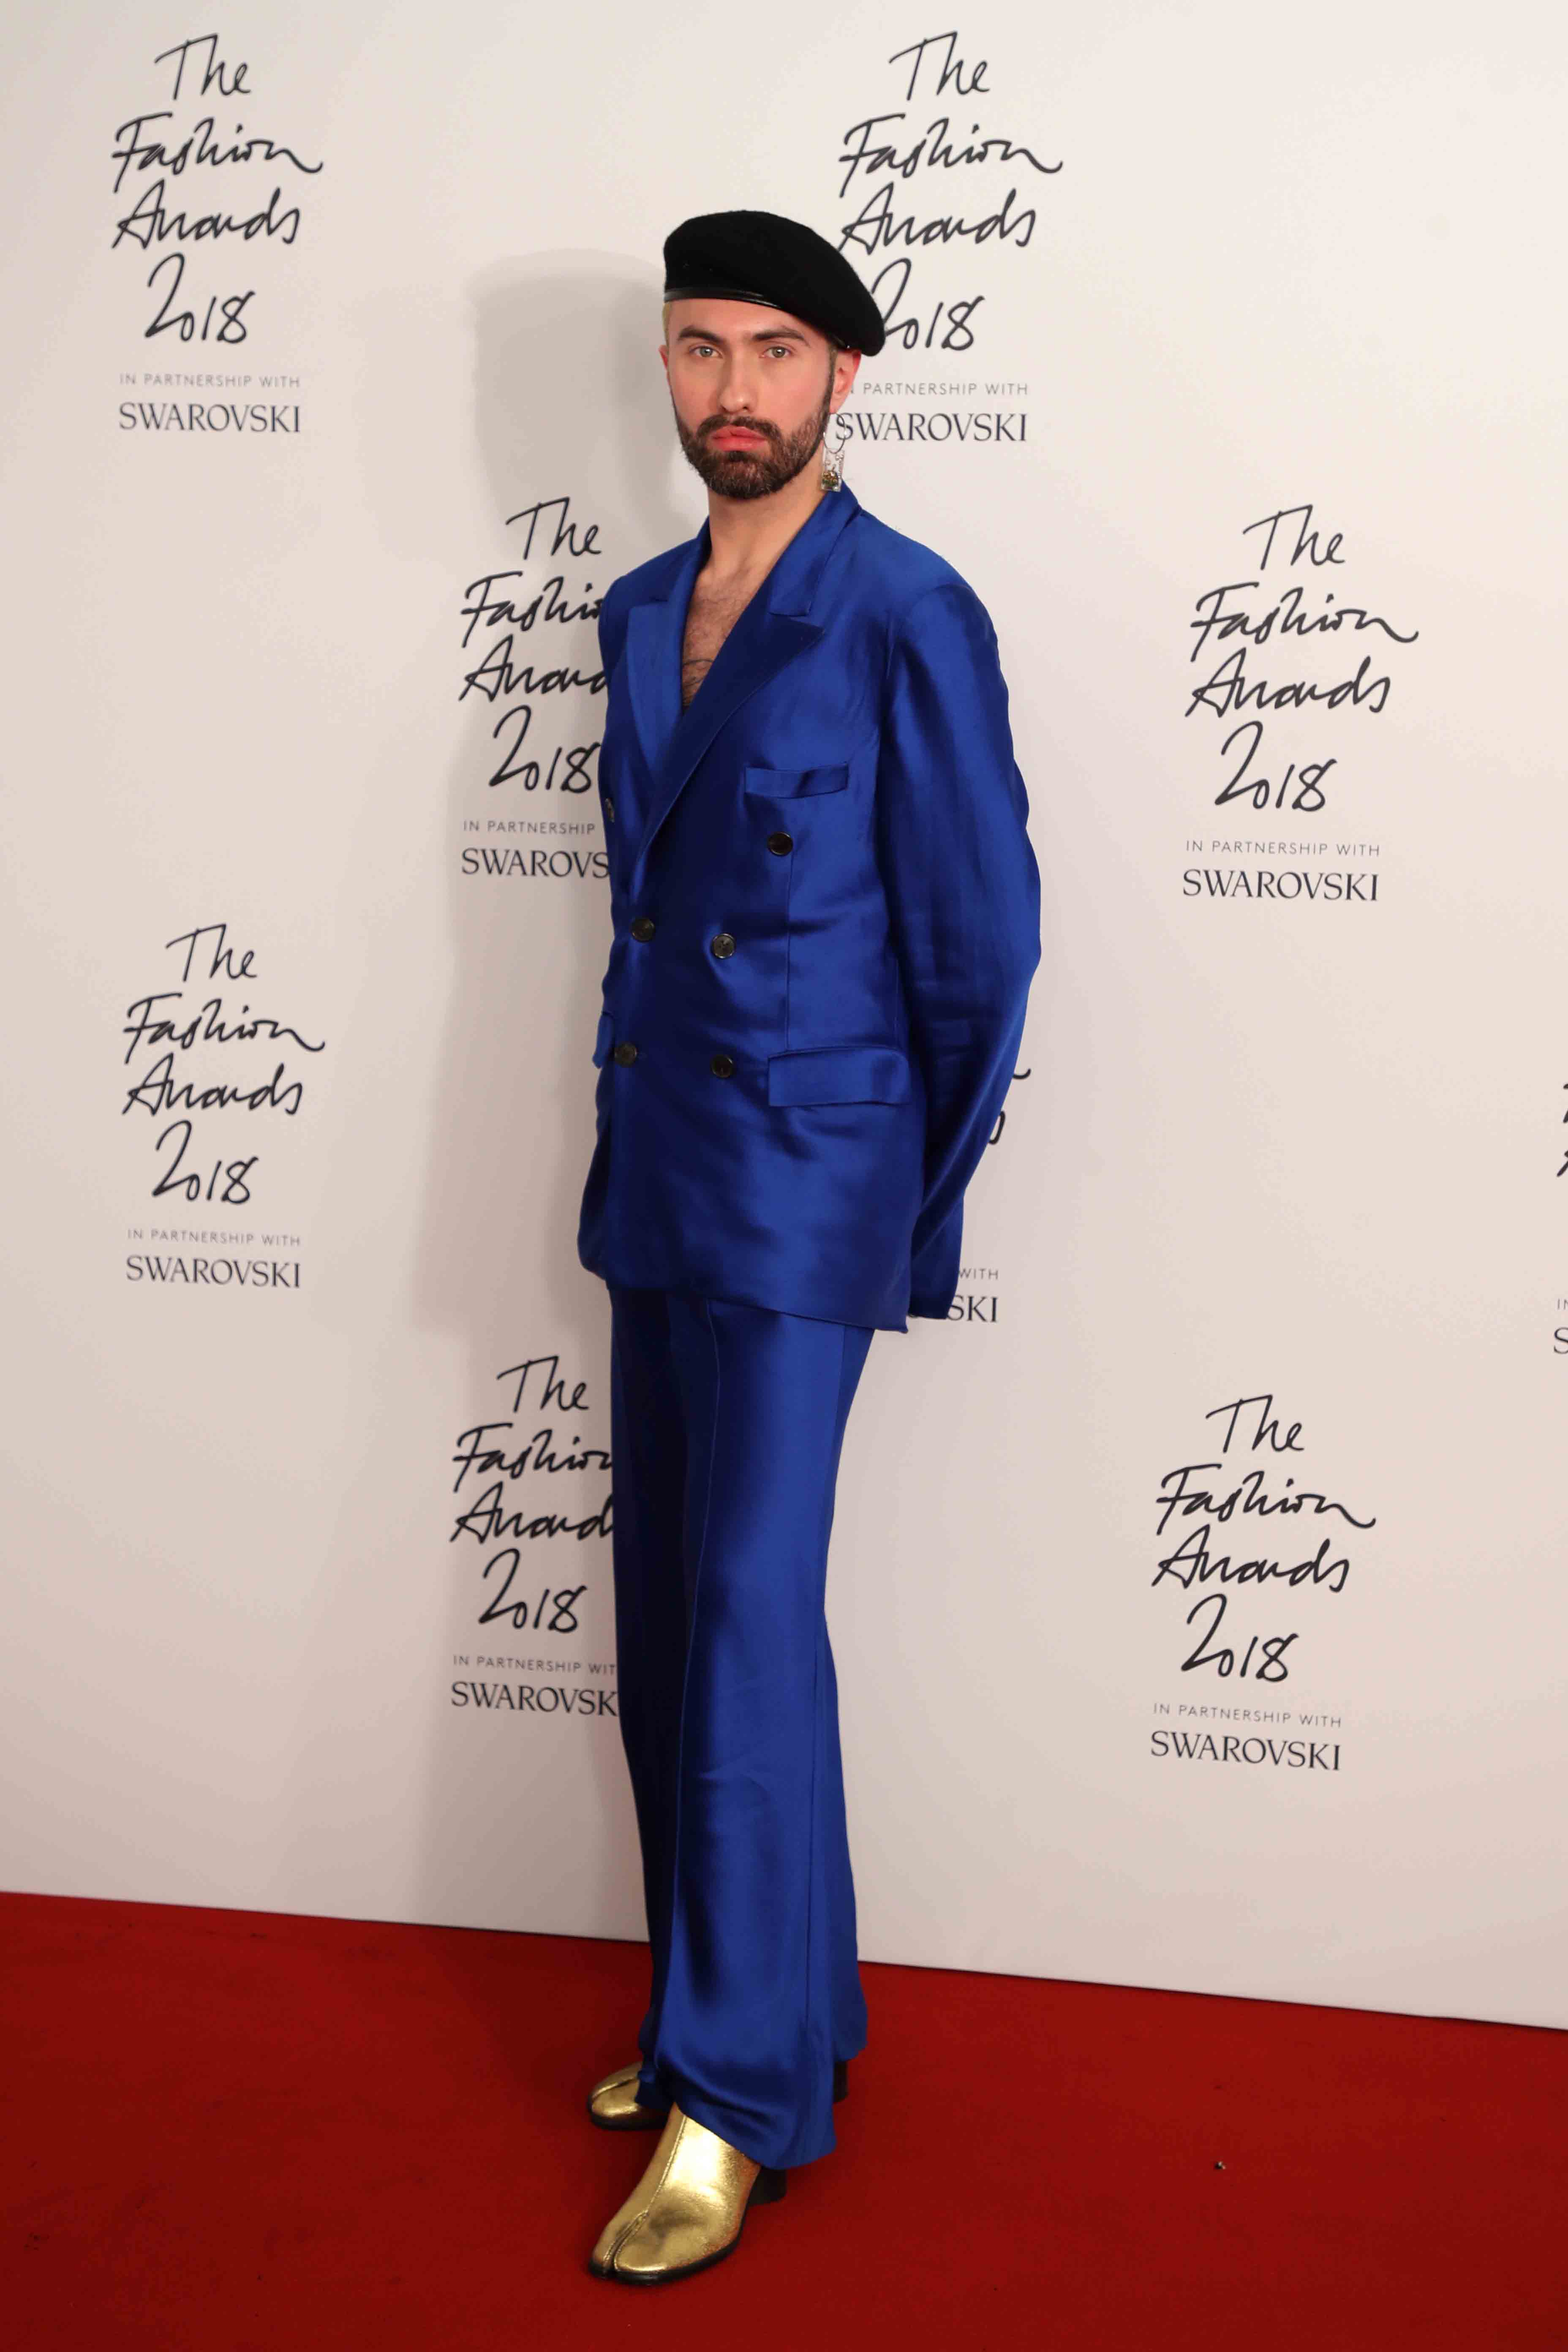 The fashion awards 2018 in partnership with swarovski winners room